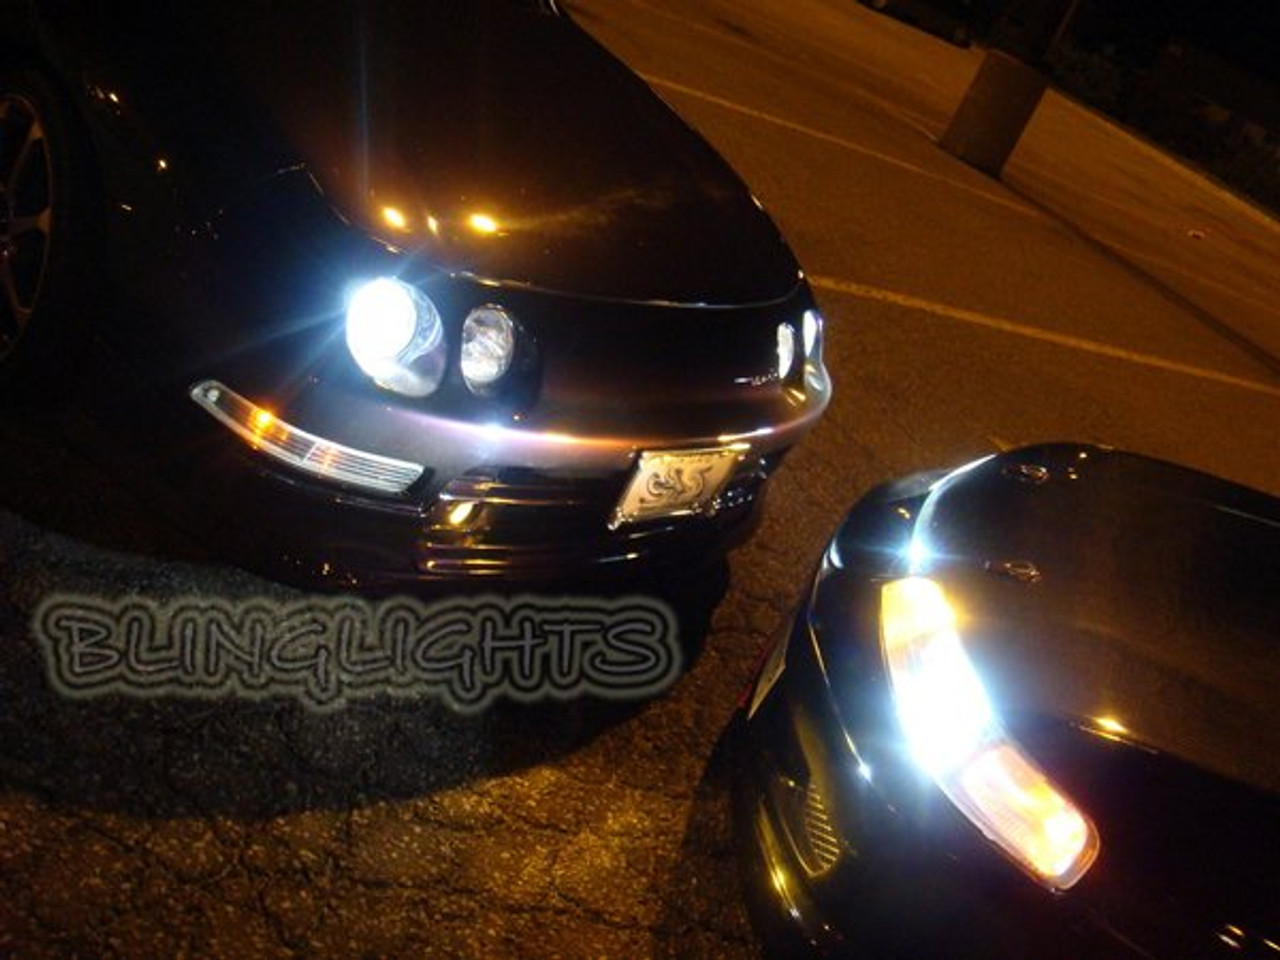 Acura Integra Bright White Headlamps Headlights Head Lamps Lights Replacement Light Bulbs Blinglights Com